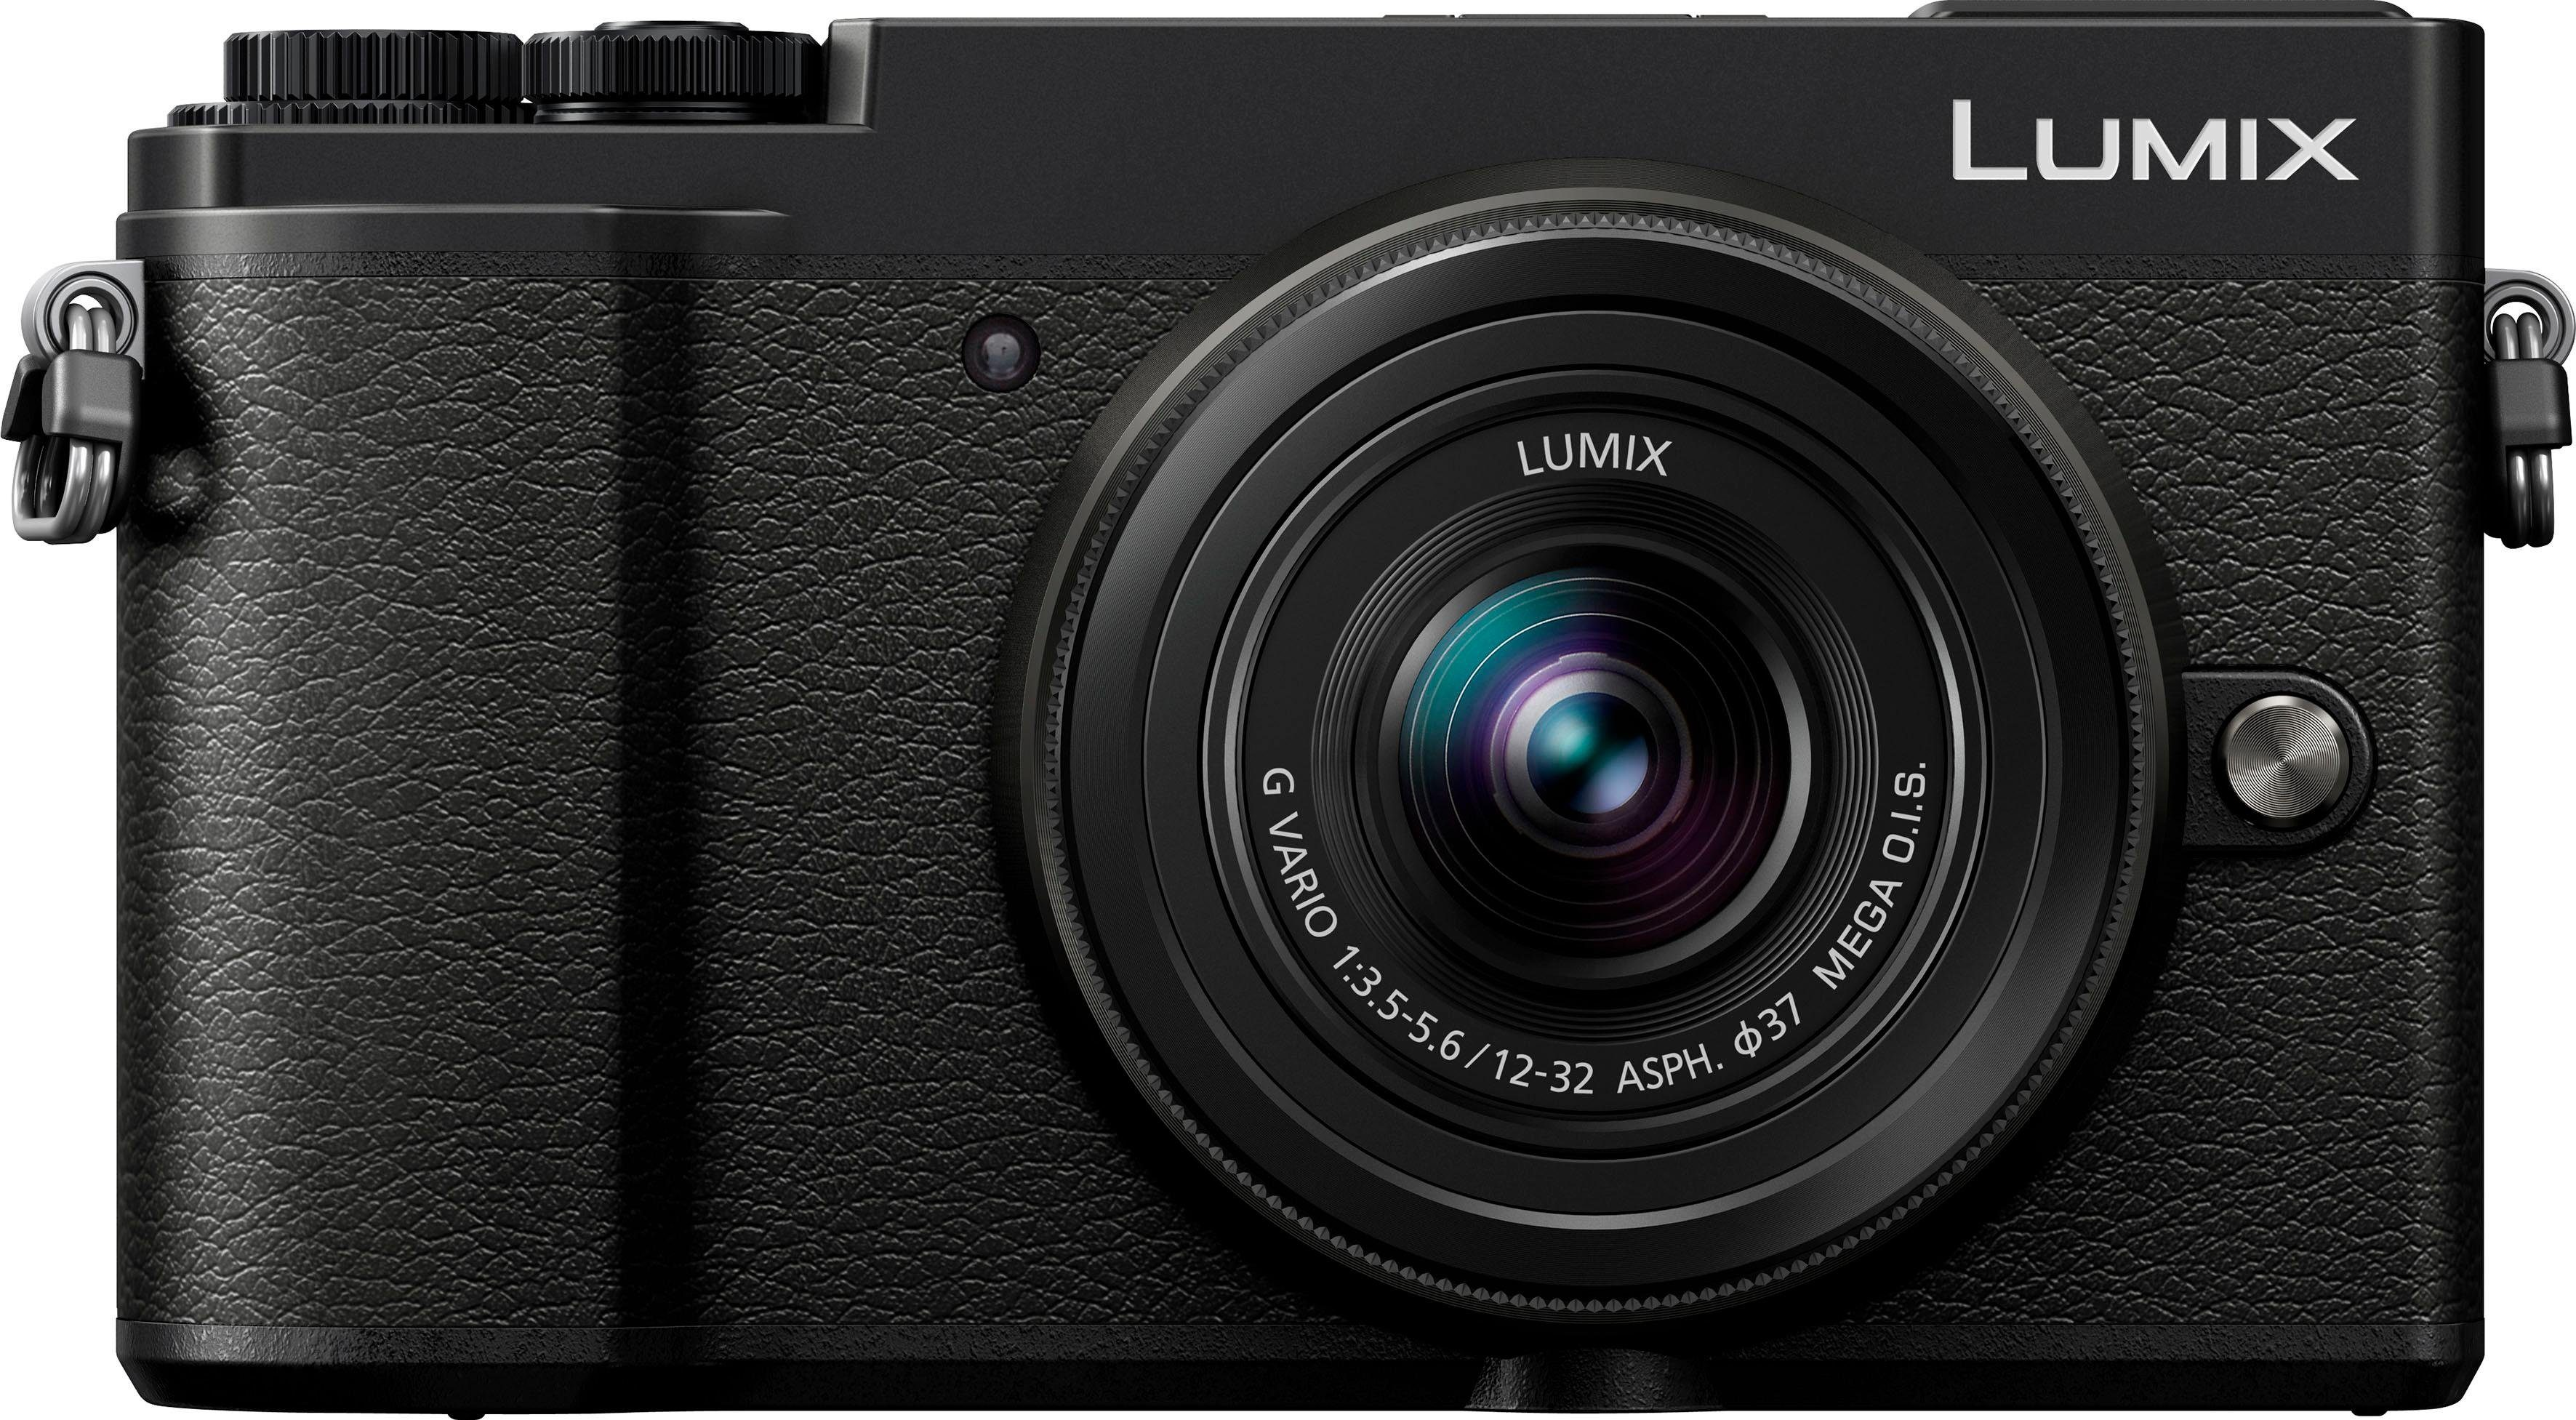 Lumix Panasonic »DC-GX9KEG-K« Systemkamera (LUMIX G VARIO 12-32mm / F3.5-5.6 ASPH. / MEGA O.I.S., 20,3 MP, 4x opt. Zoom, Bluetooth, WLAN (Wi-Fi)